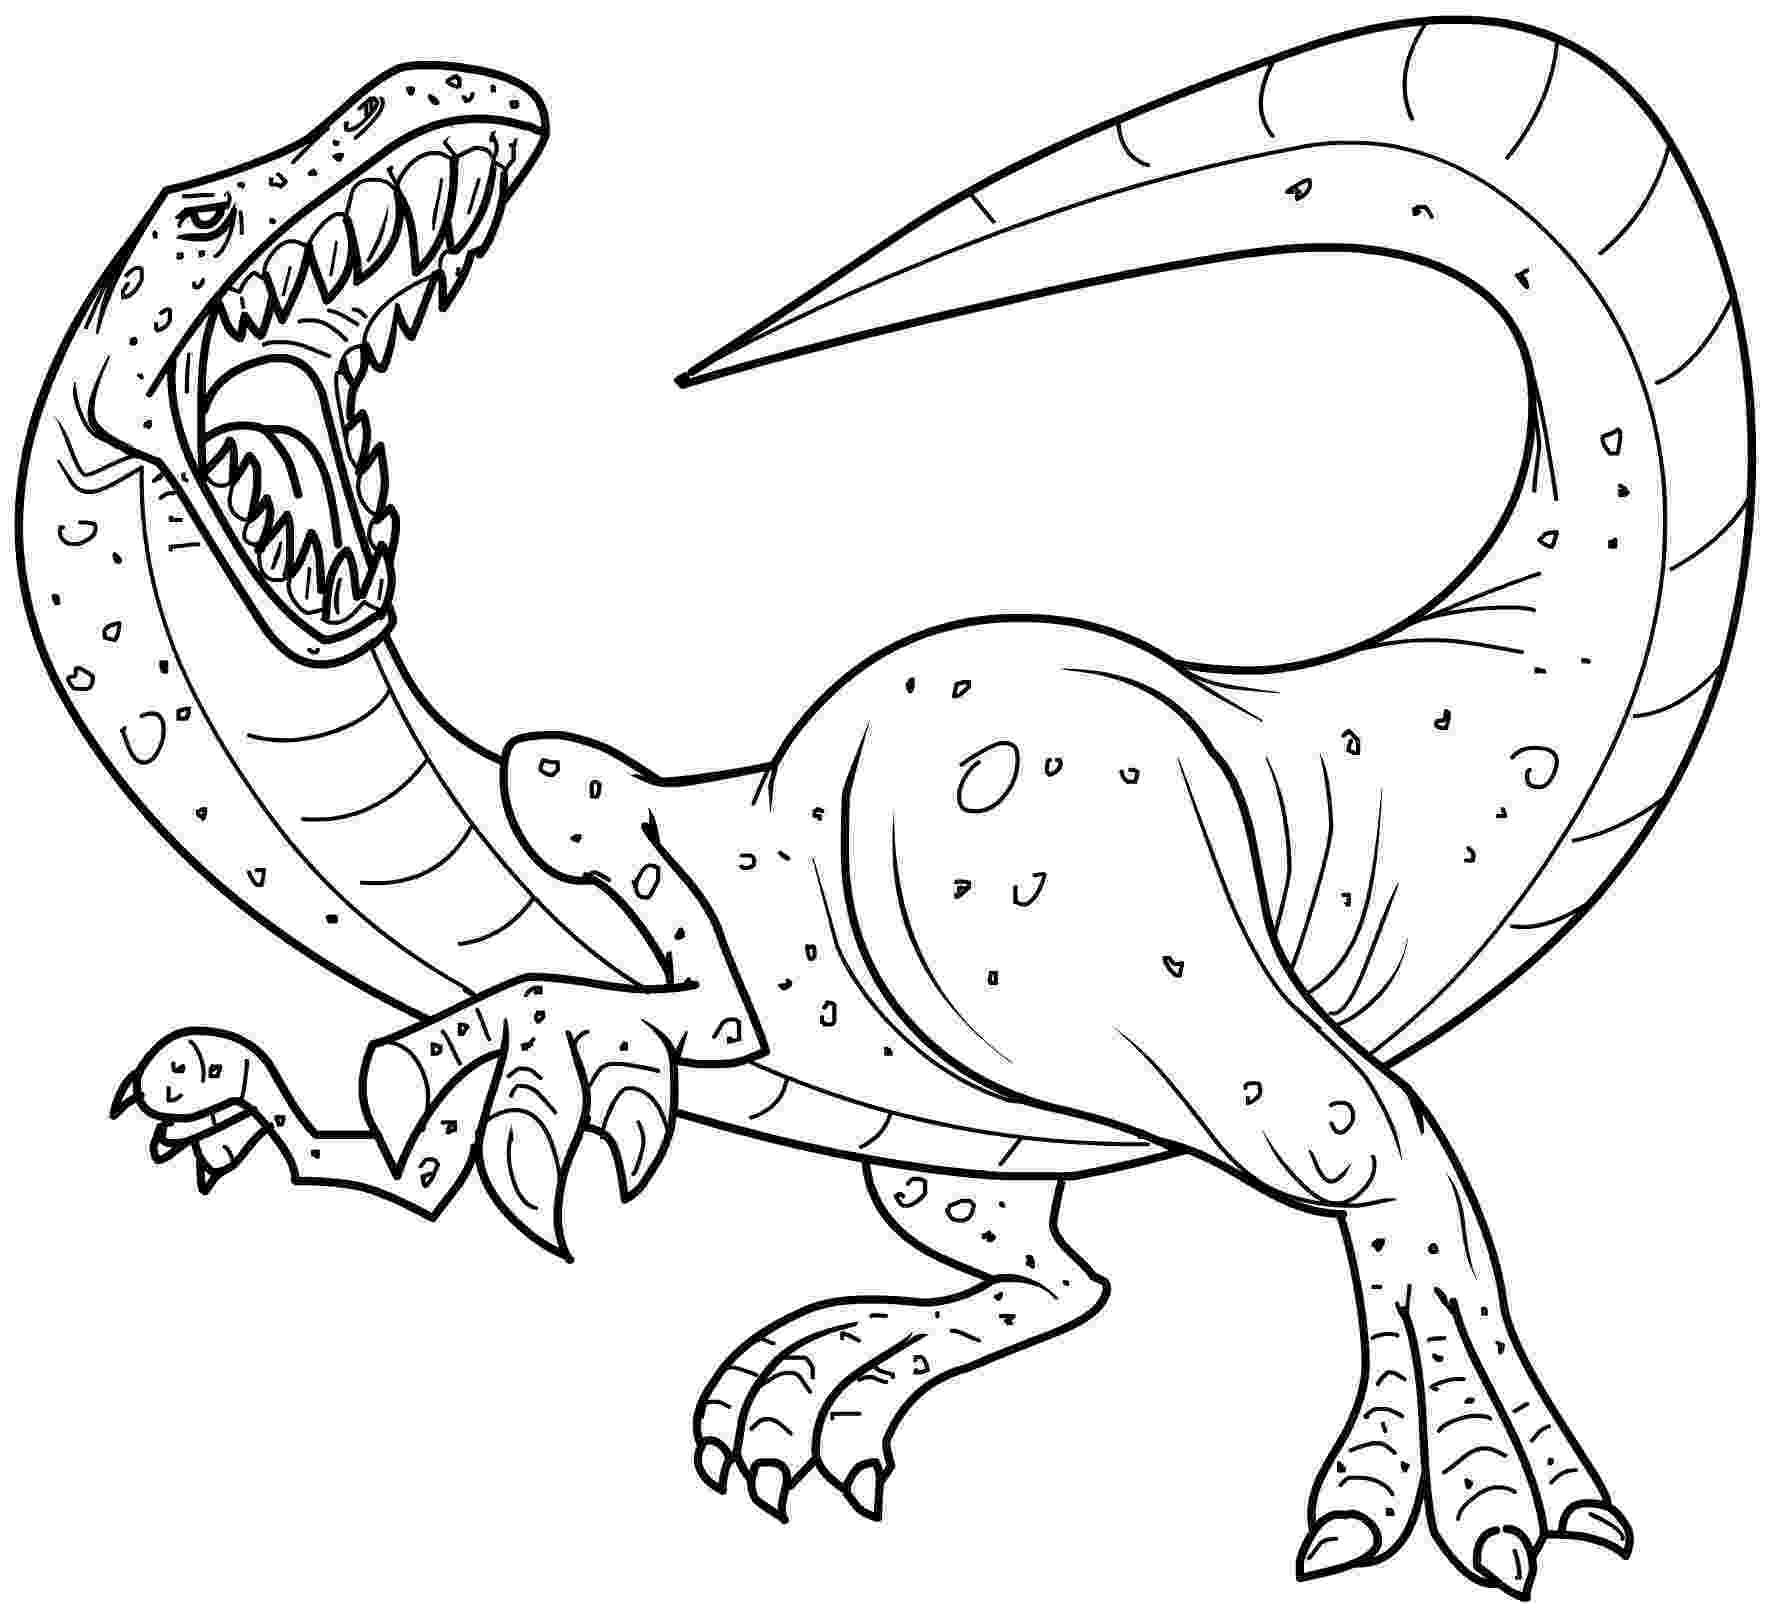 dinosaurs colouring pictures to print dinosaur coloring pages free printable pictures coloring pictures print to colouring dinosaurs